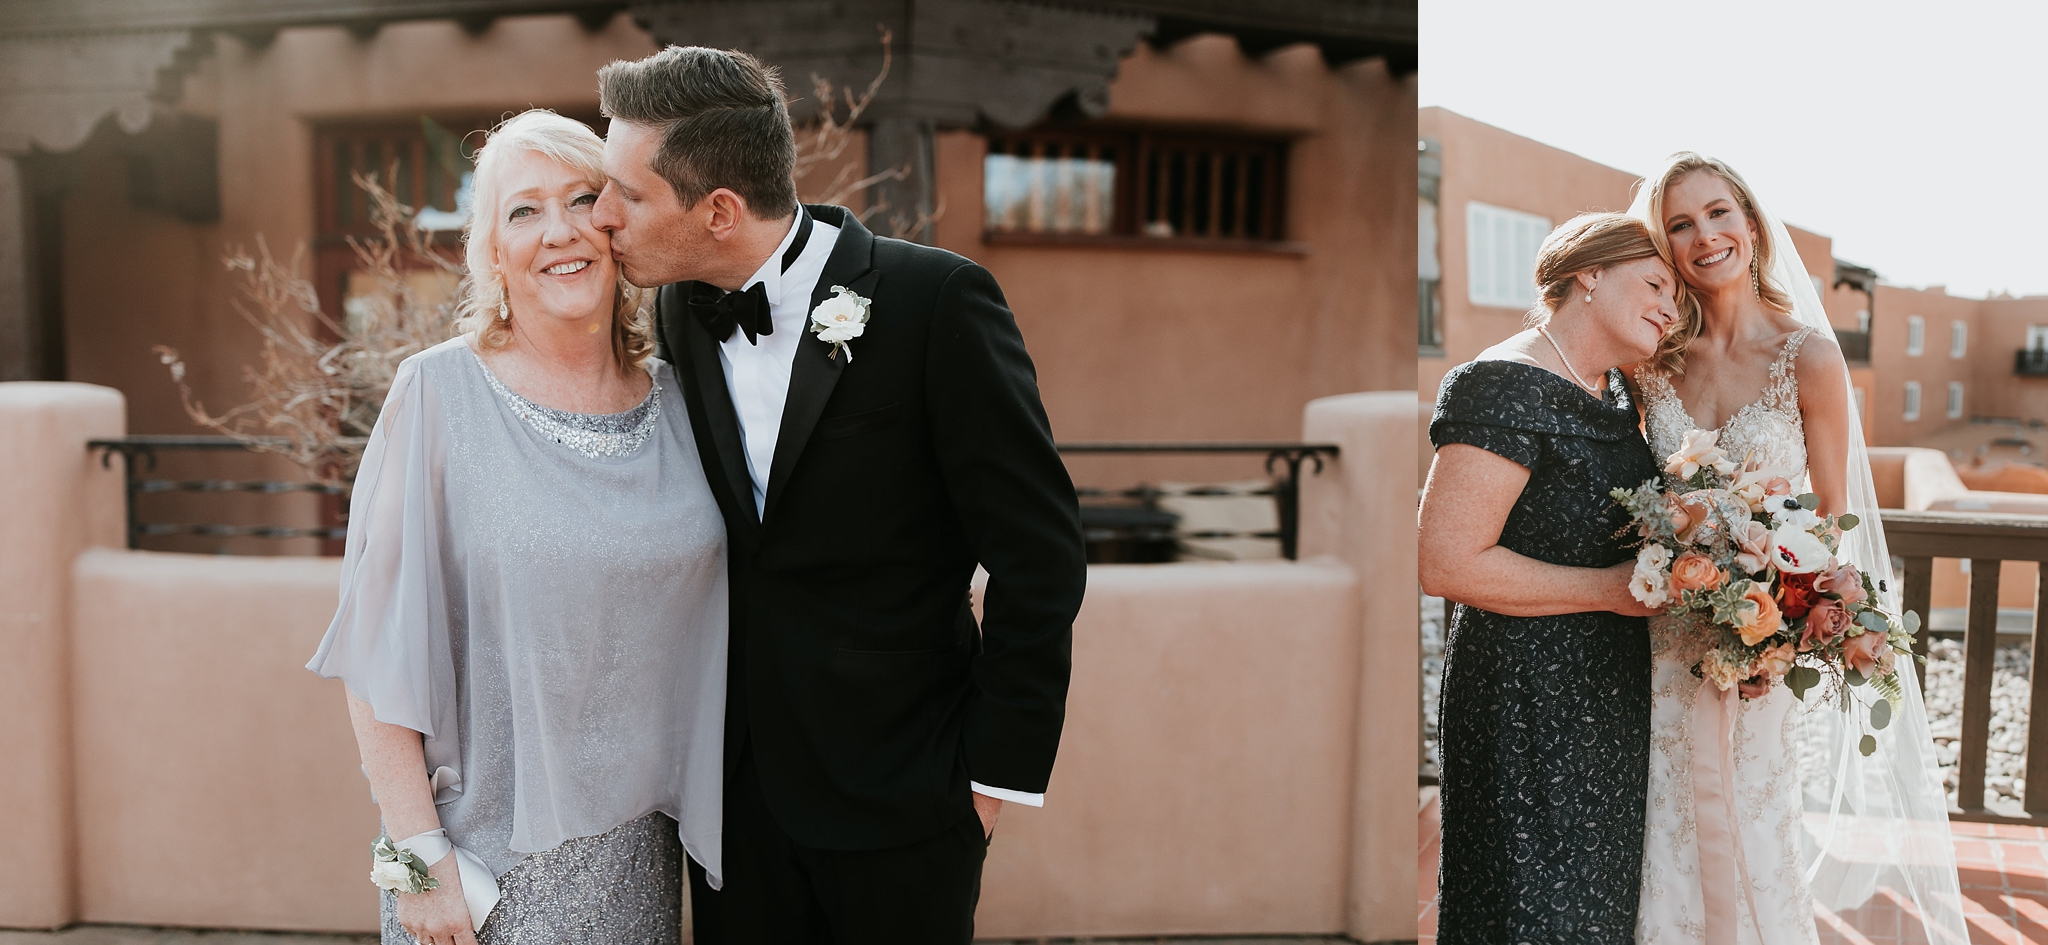 Alicia+lucia+photography+-+albuquerque+wedding+photographer+-+santa+fe+wedding+photography+-+new+mexico+wedding+photographer+-+new+mexico+wedding+-+family+photographer+-+mothers+day+-+mother+of+the+bride_0008.jpg